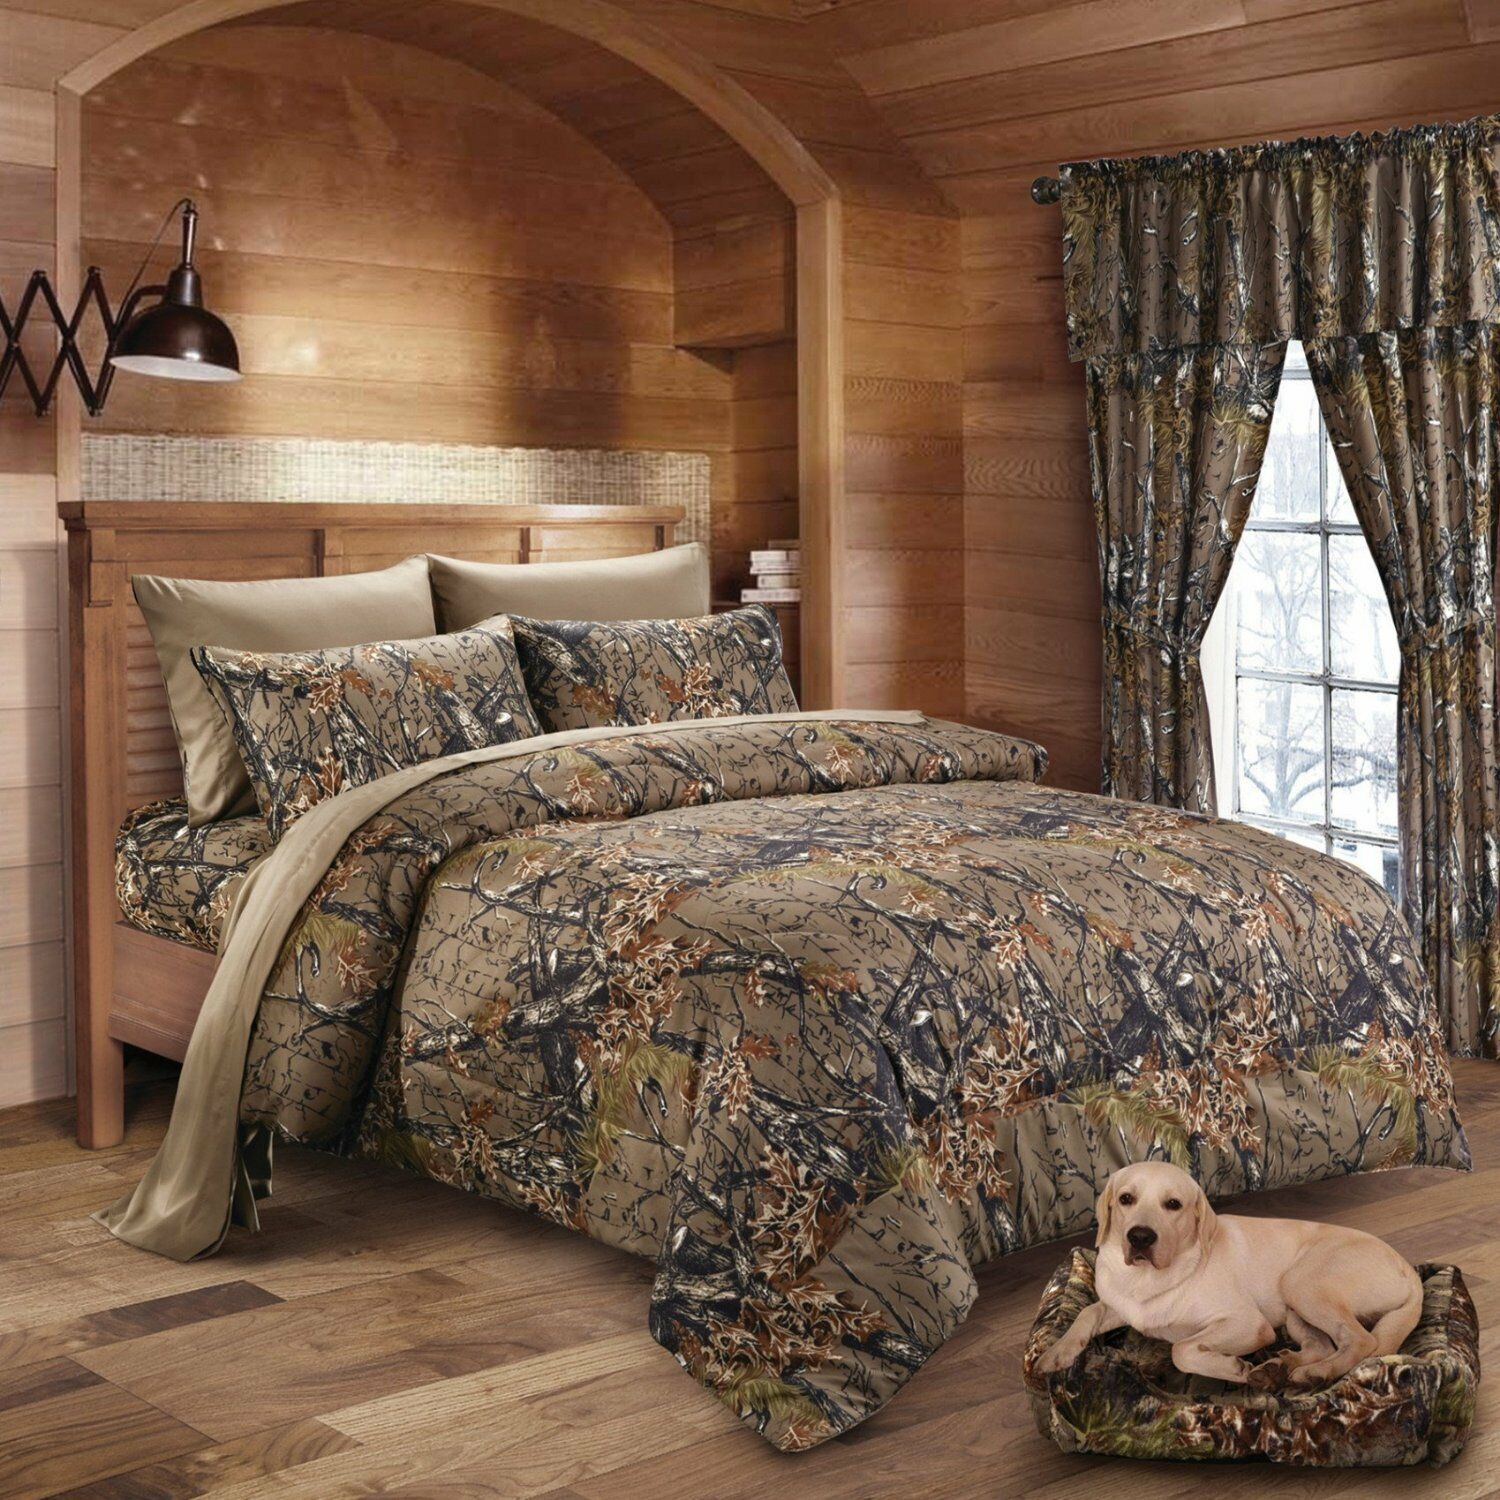 17 PC SET WOODS CAMO COMFORTER AND SHEET SET  FULL  BED IN BAG SET  CAMOUFLAGE